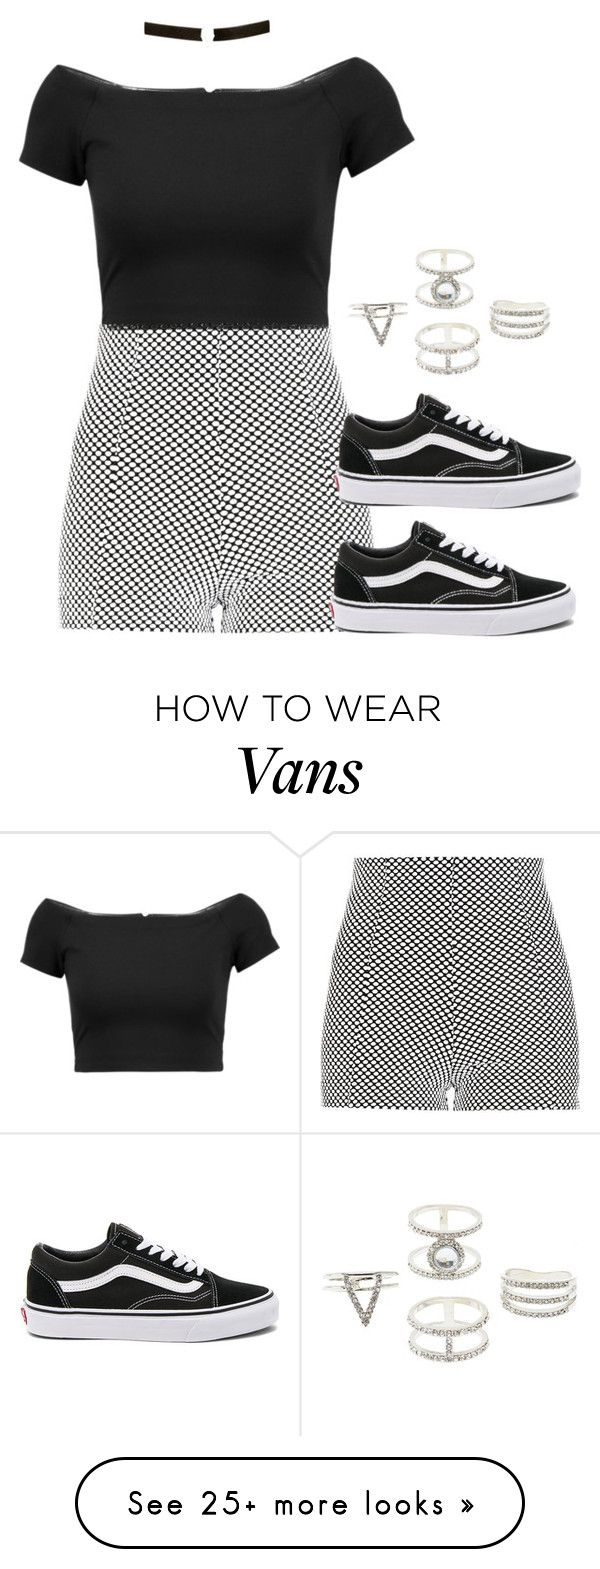 """Sem título #226"" by nodifference on Polyvore featuring Alice + Olivia, River Island, Vans and Charlotte Russe"